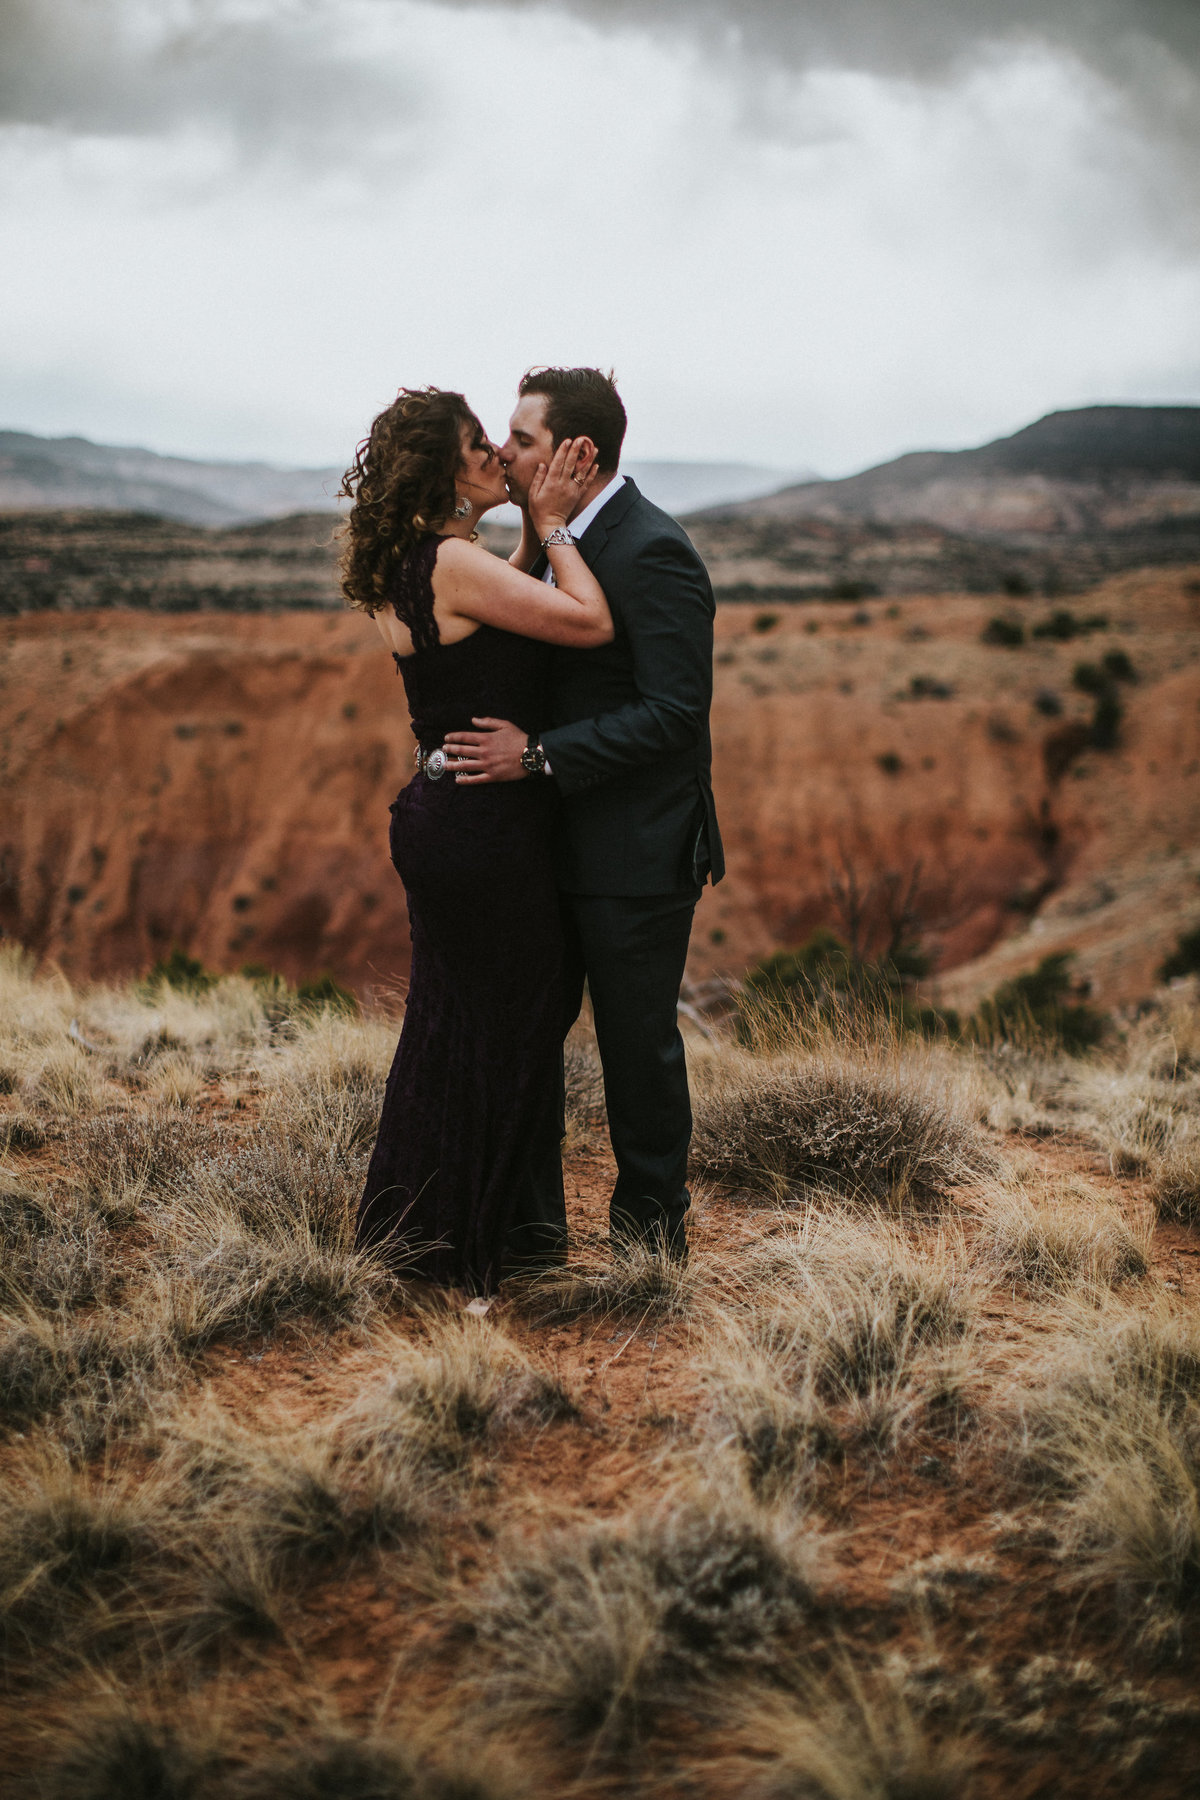 new-mexico-destination-engagement-wedding-photography-videography-adventure-413